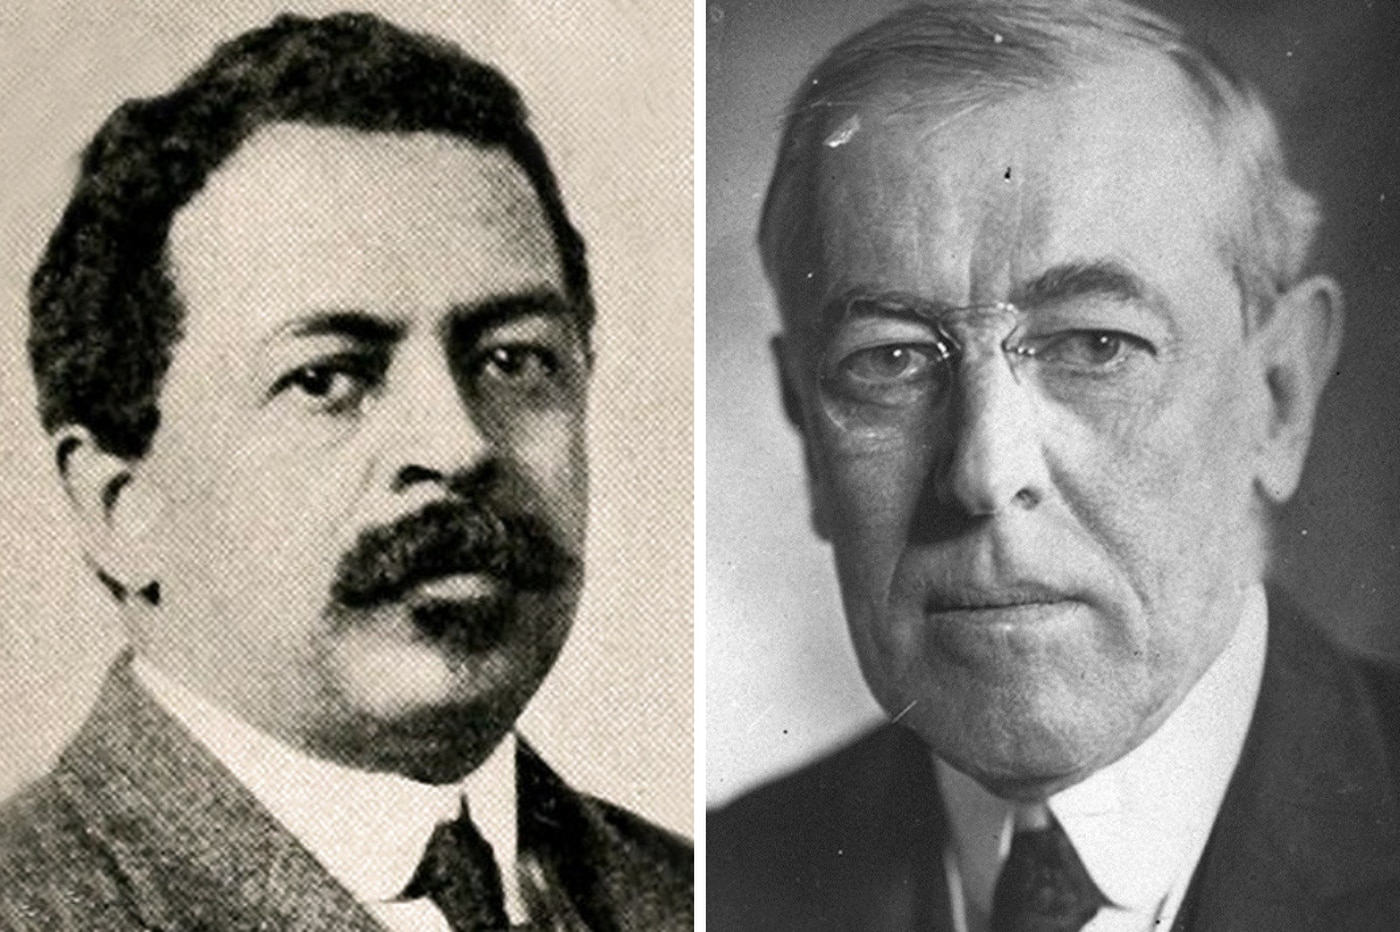 Renaming Camden's Woodrow Wilson school could be more than a history lesson | Kevin Riordan